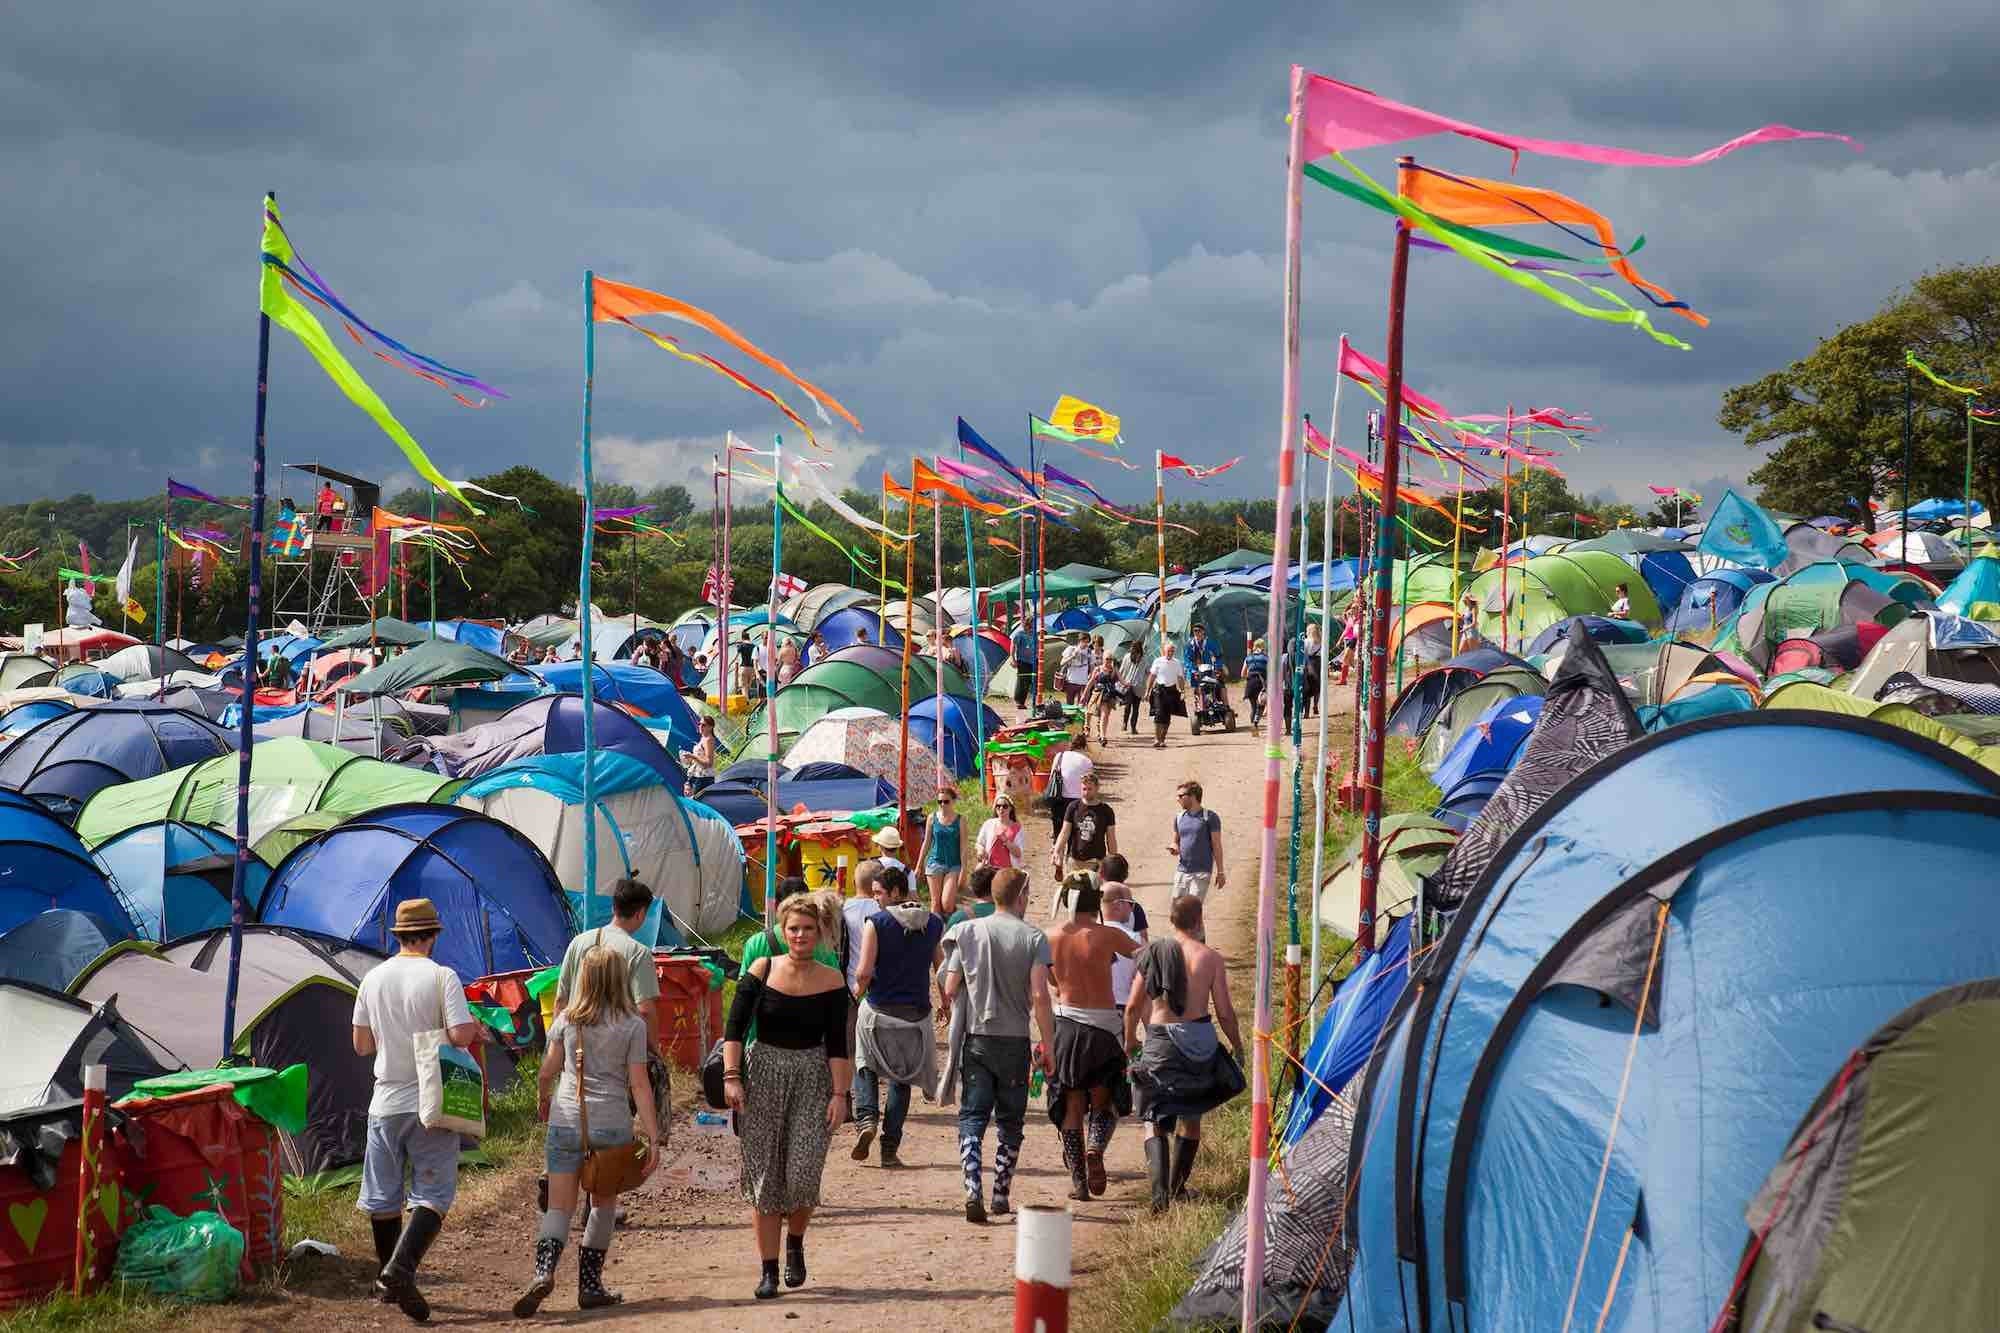 Festival Essentials Checklist: What to pack for a festival